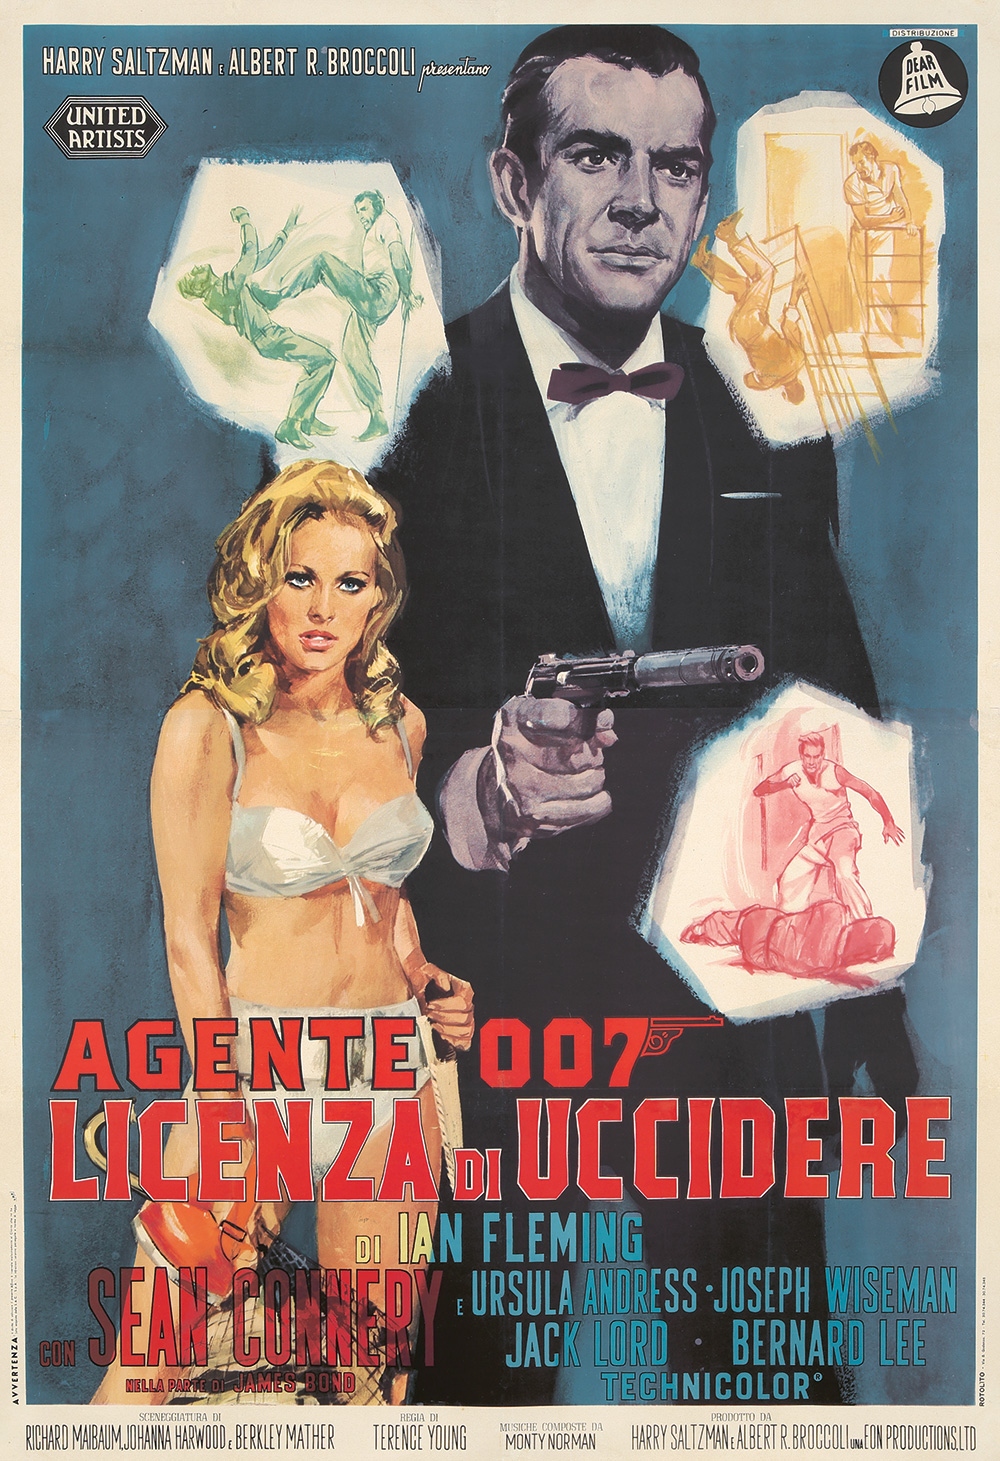 146. James Bond / Licenza di Uccidere.